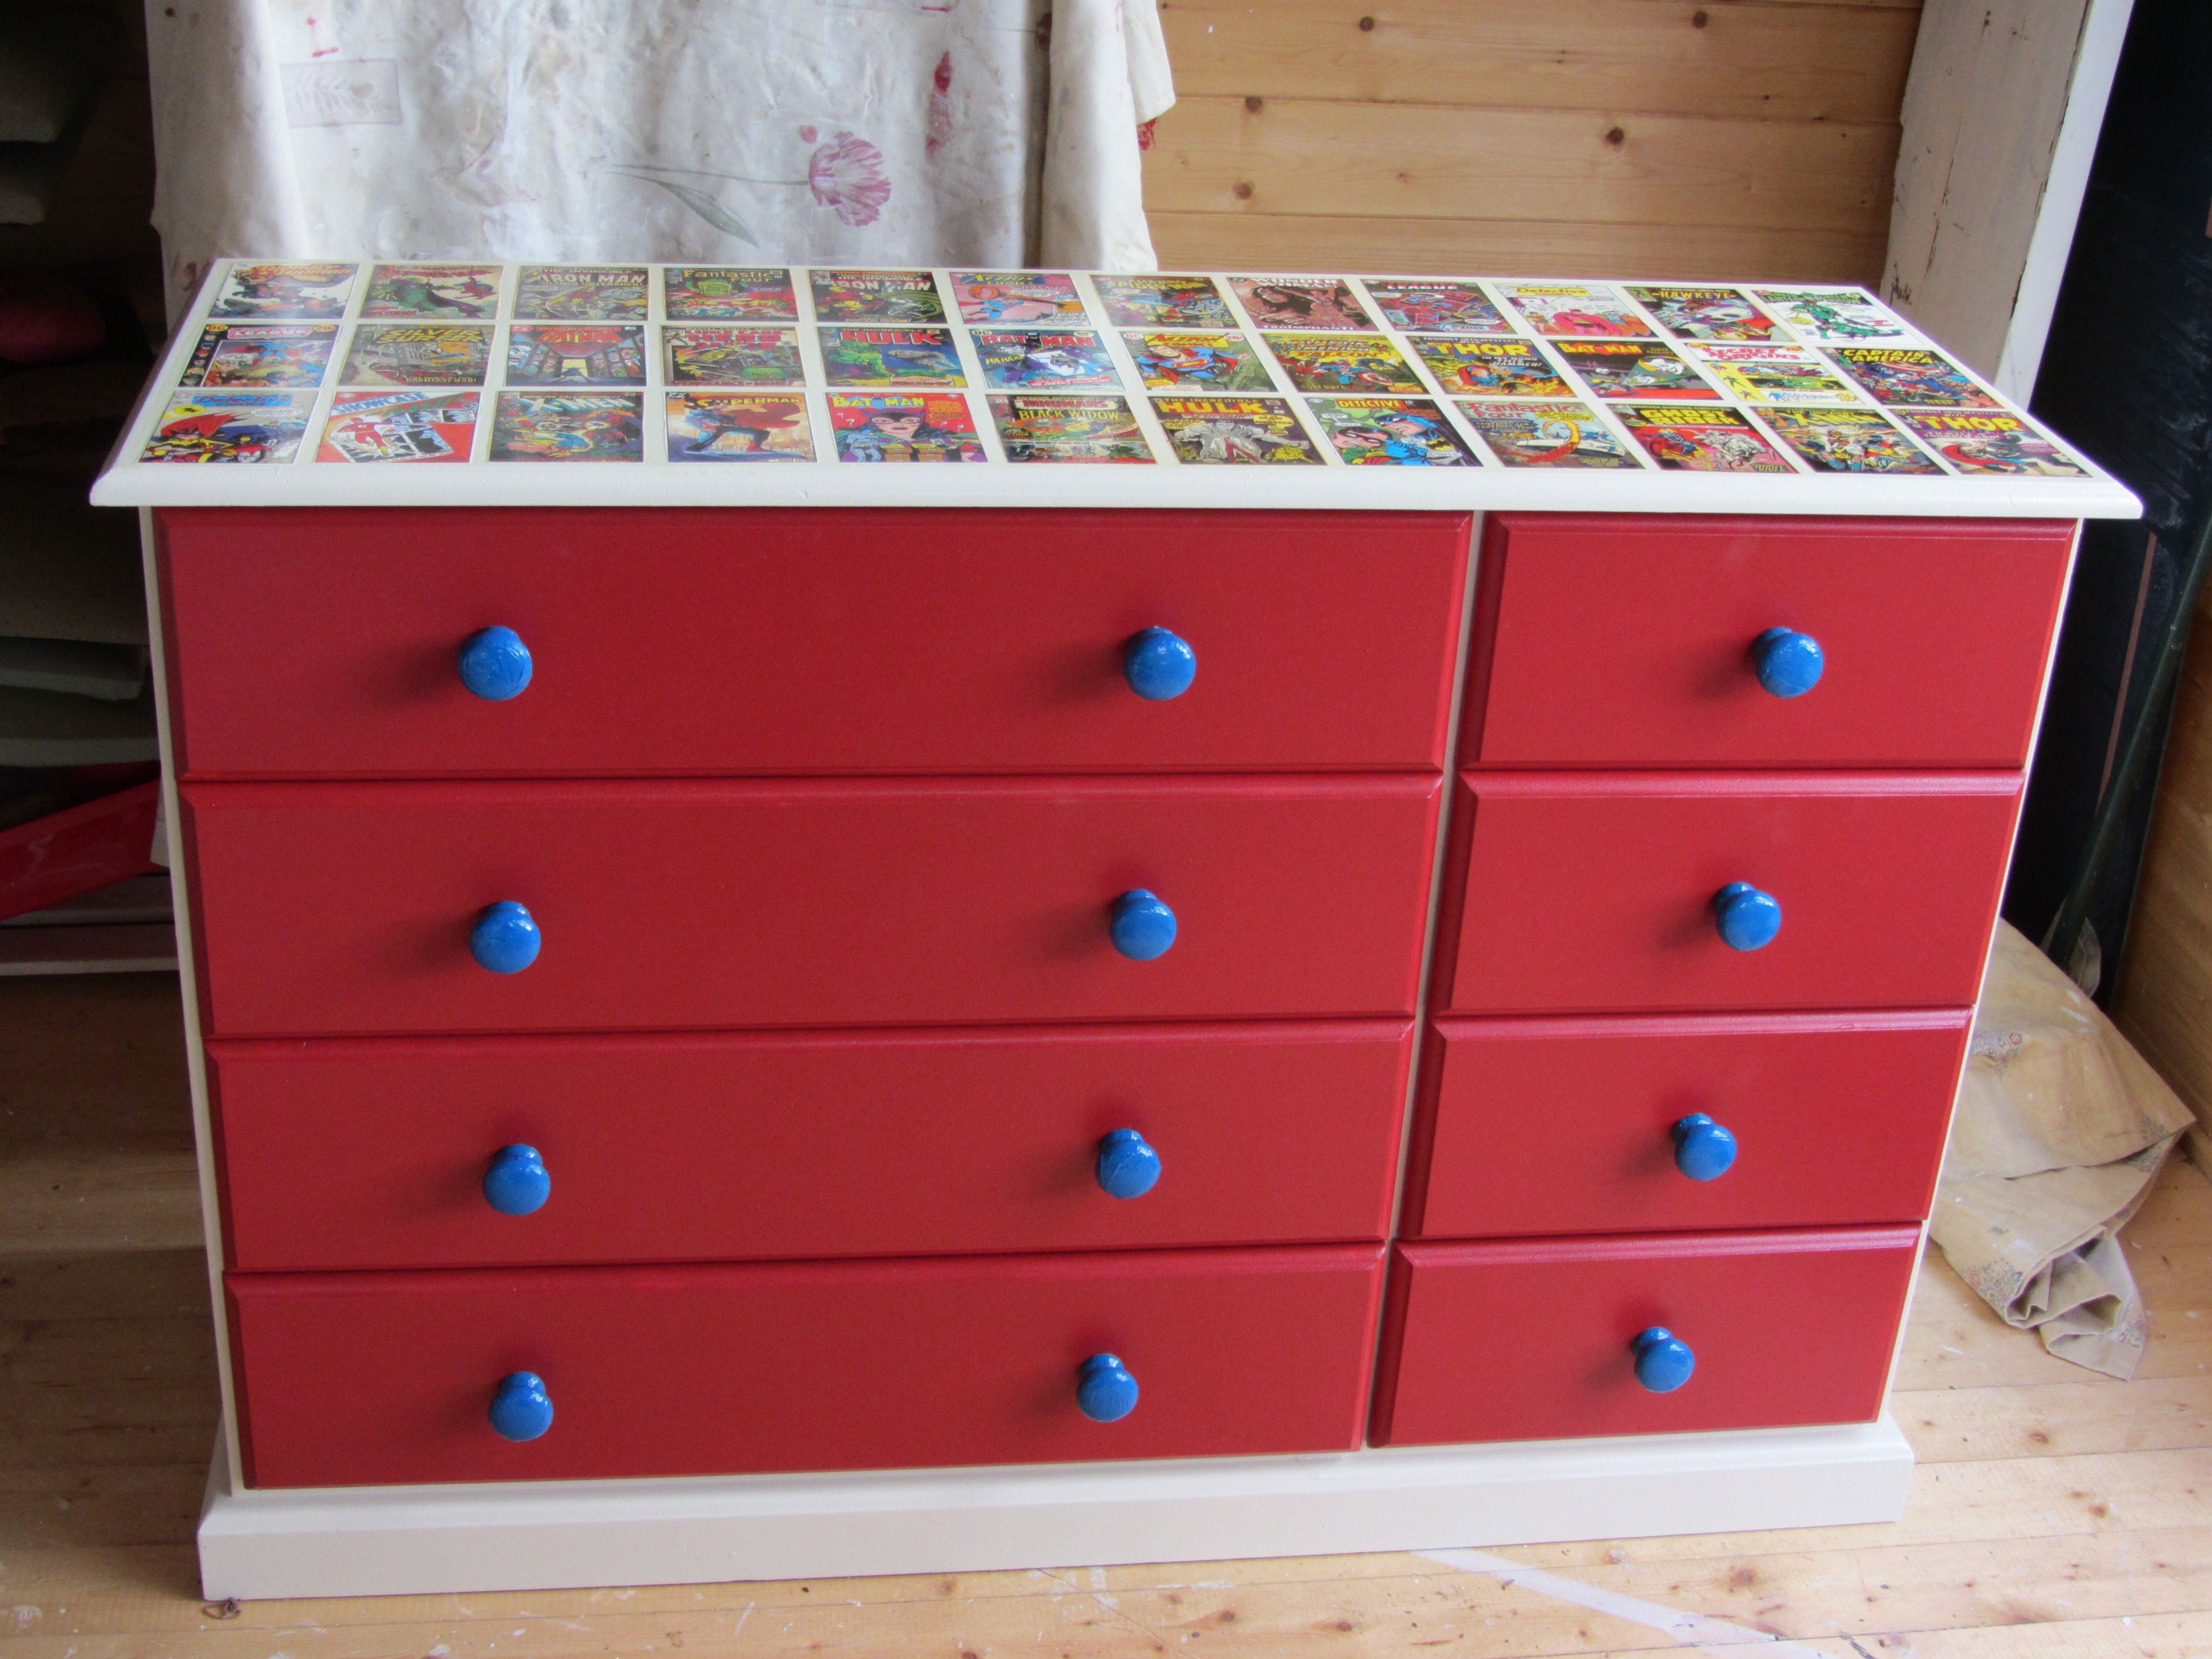 Super hero chest of drawers<3